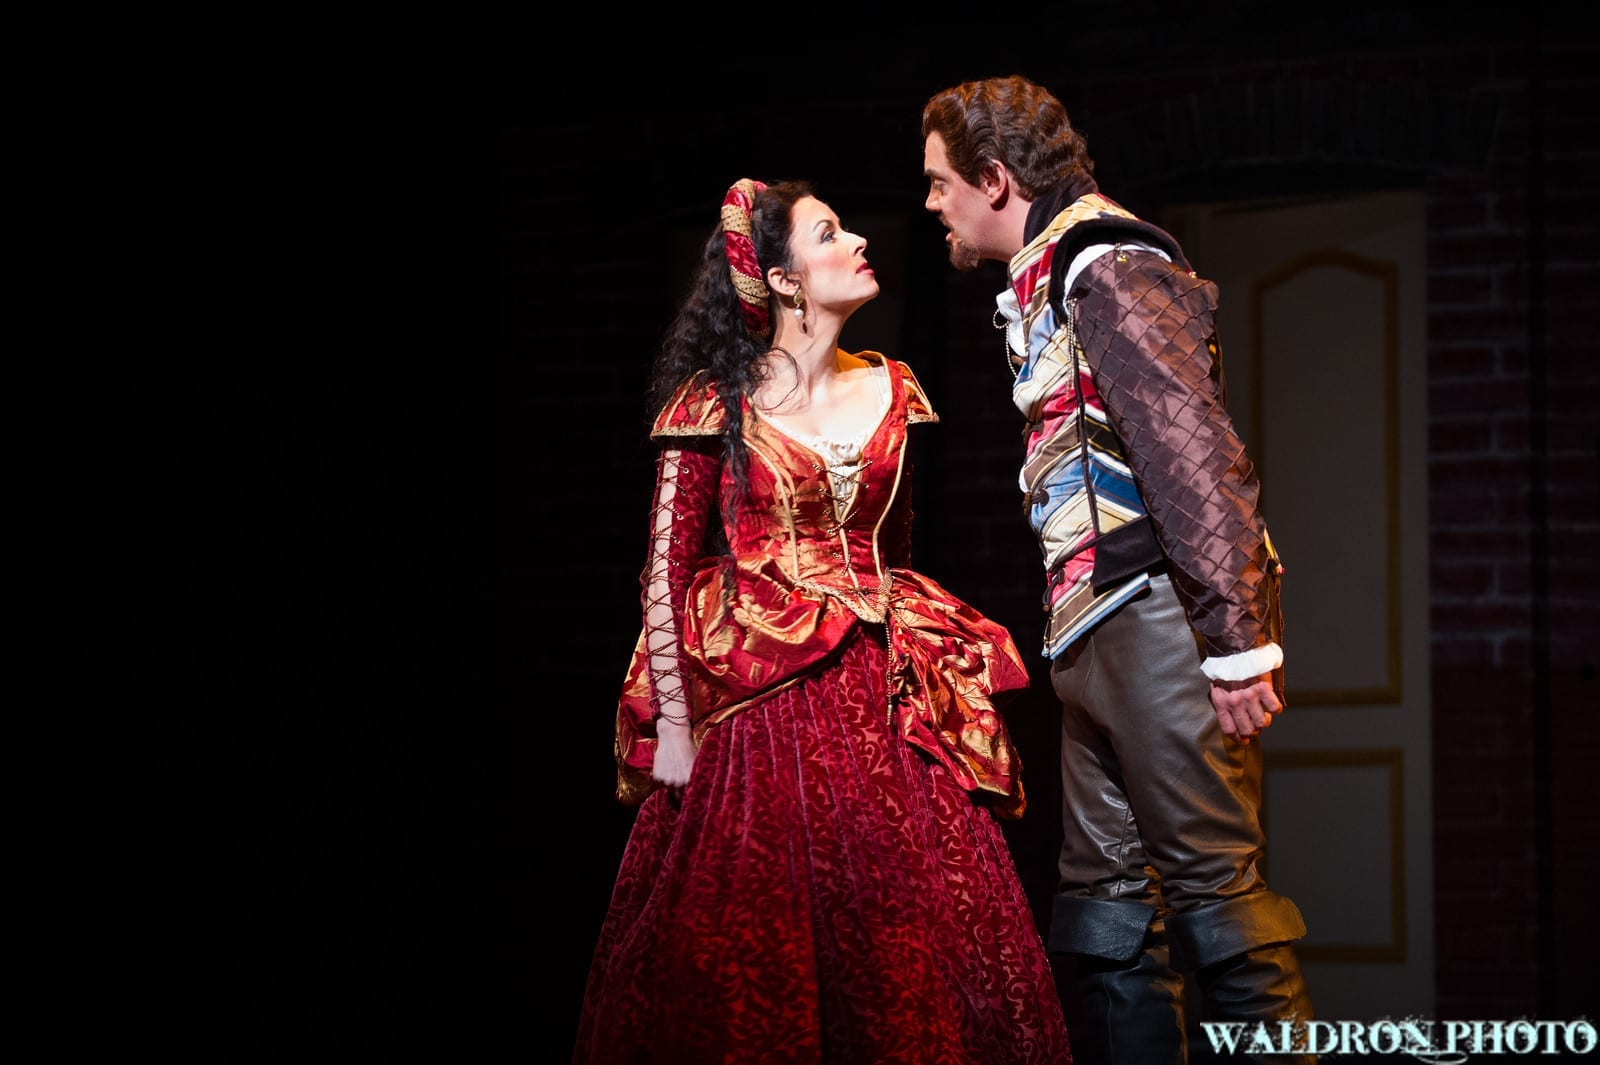 KISS ME, KATE has great talent, but lacks direction